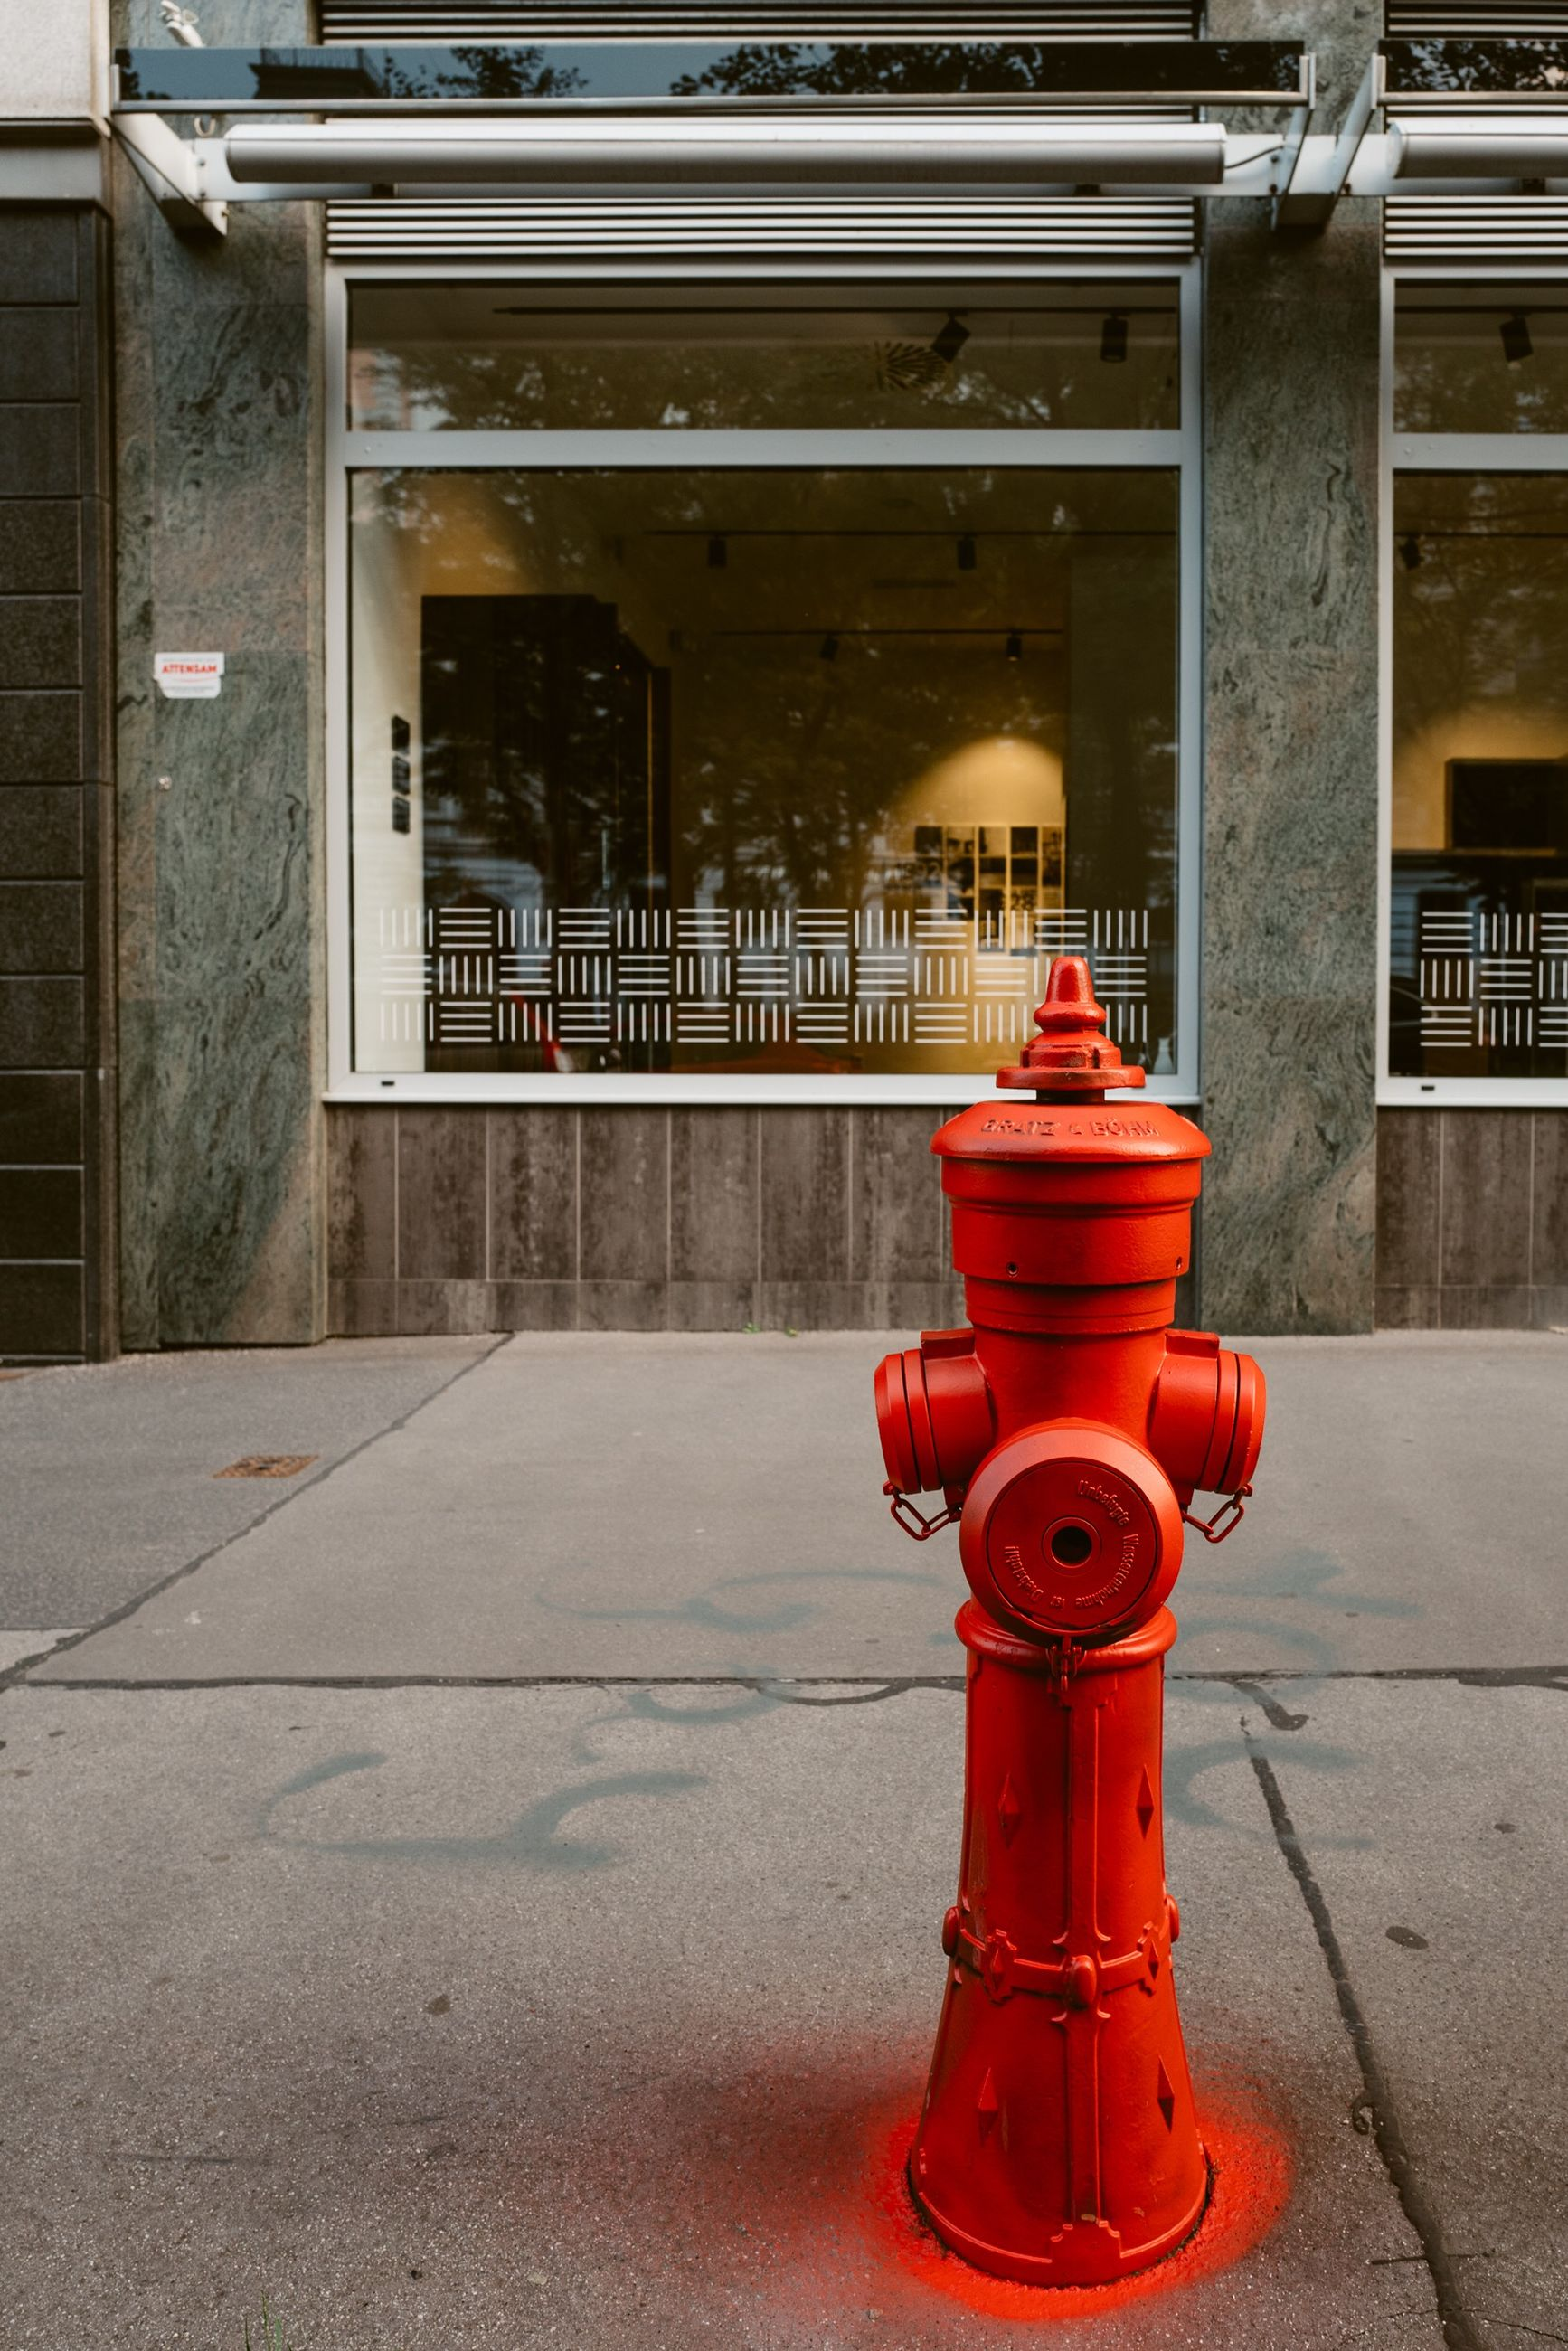 red, safety, architecture, fire hydrant, security, building exterior, protection, built structure, accidents and disasters, no people, footpath, city, day, sidewalk, street, outdoors, emergency equipment, building, water, metal